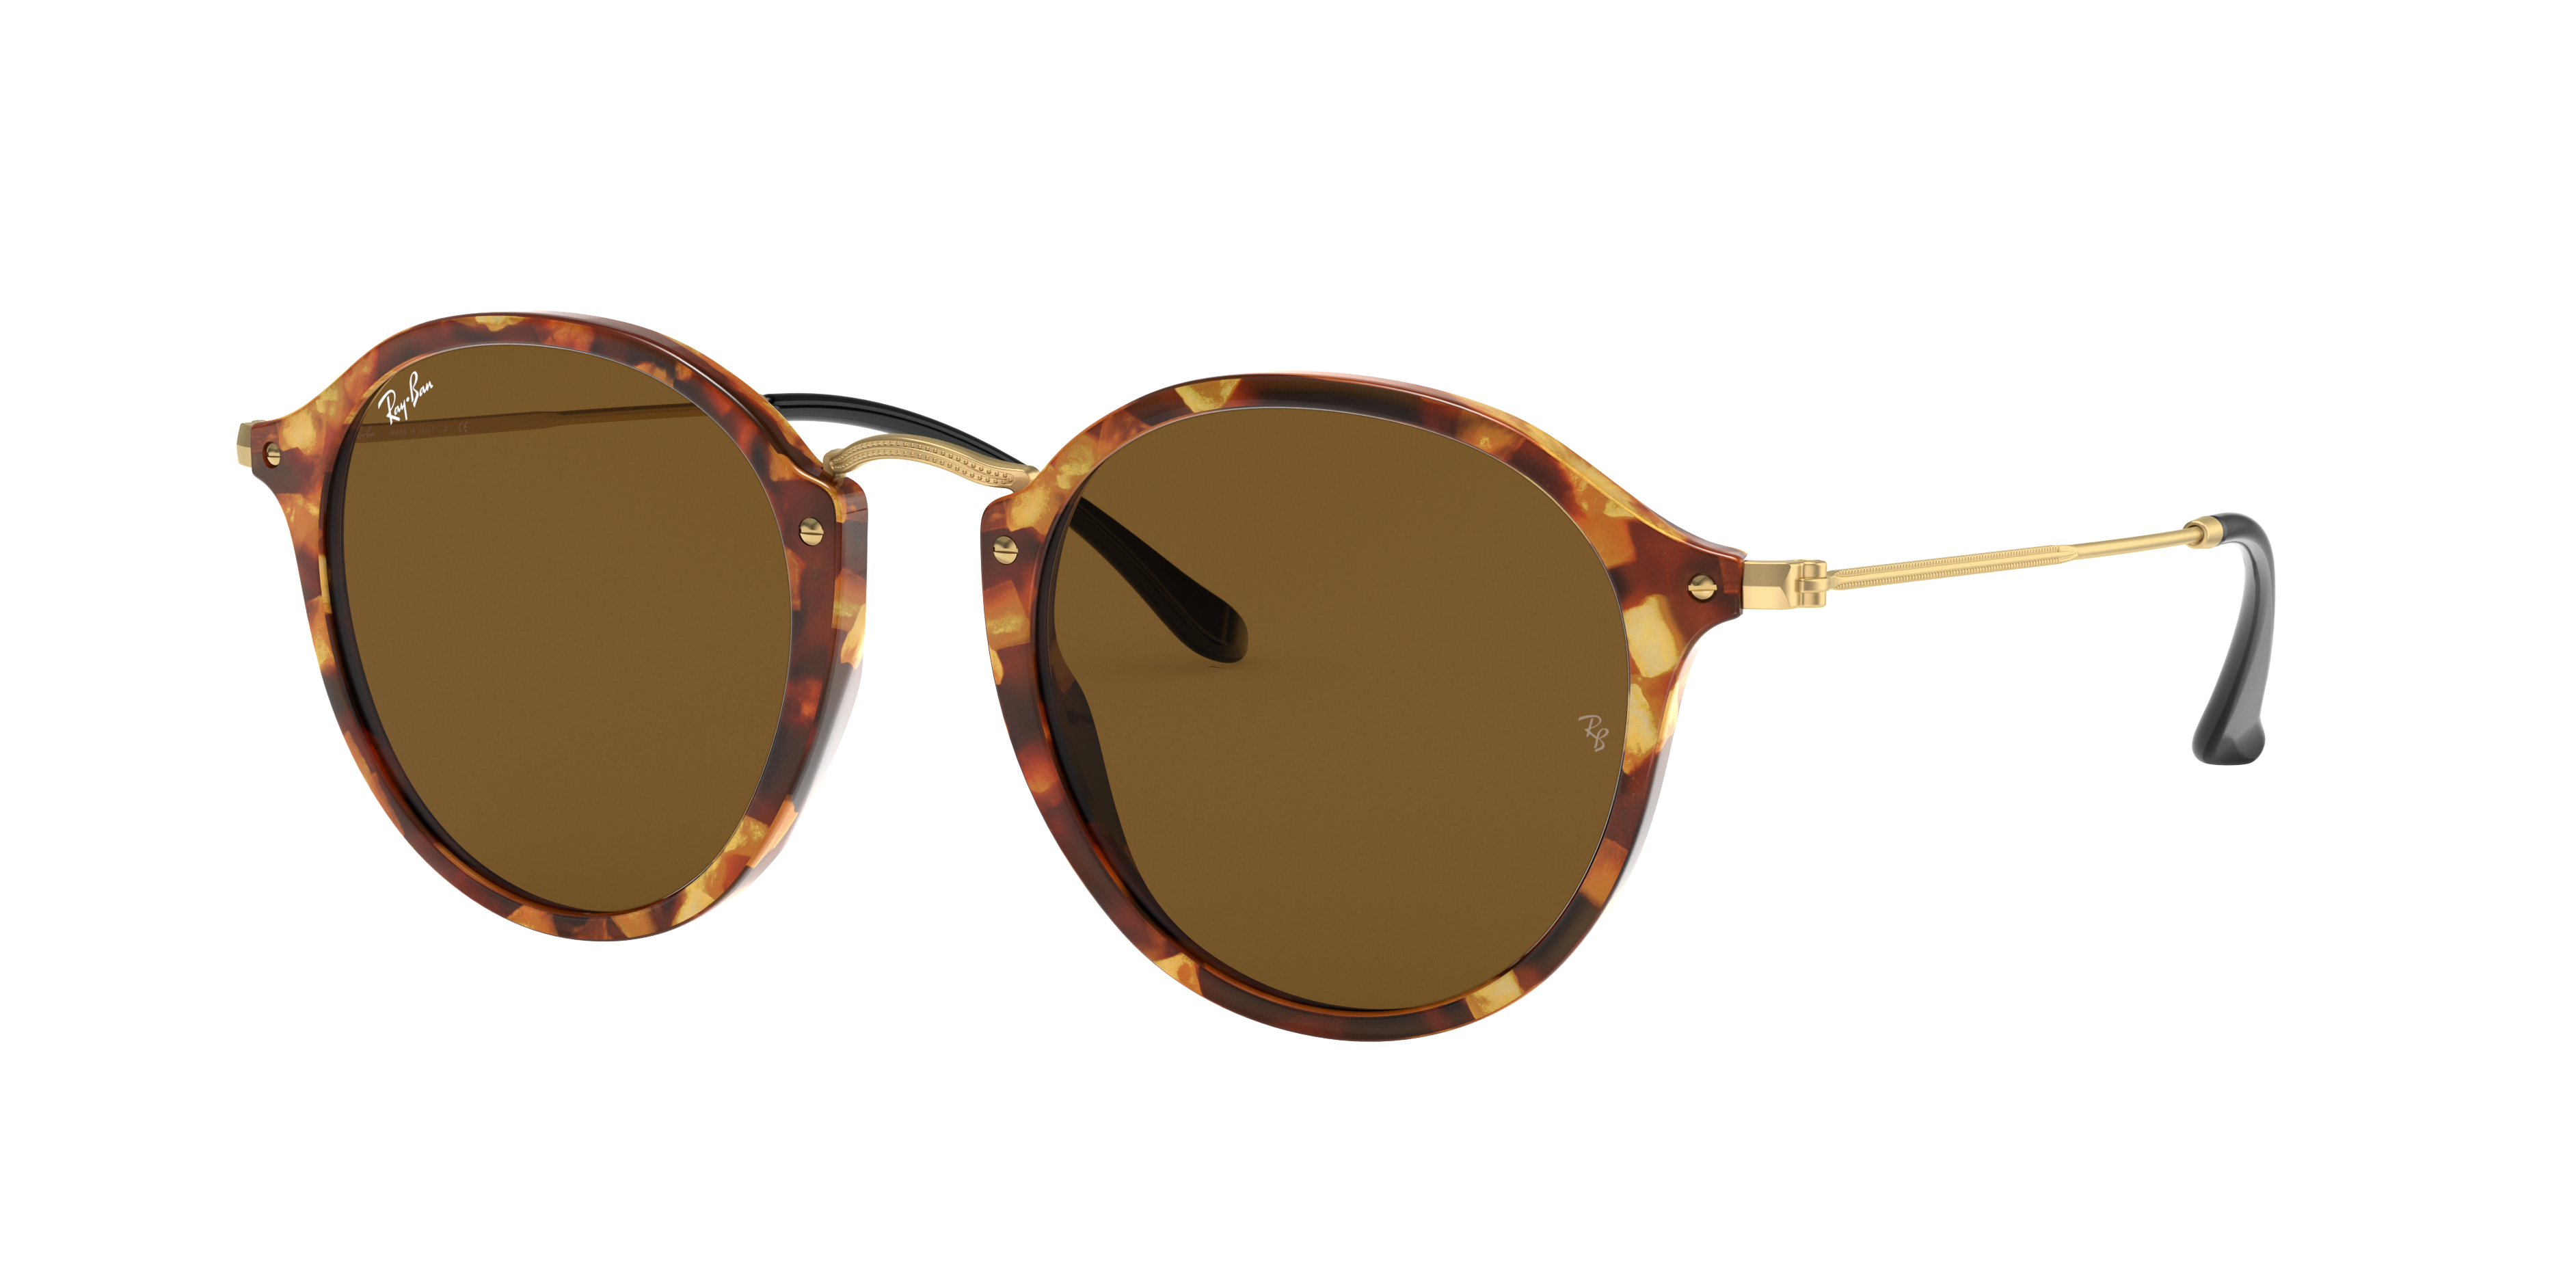 Ray-Ban Round Fleck Gold, Brown Lenses - RB2447